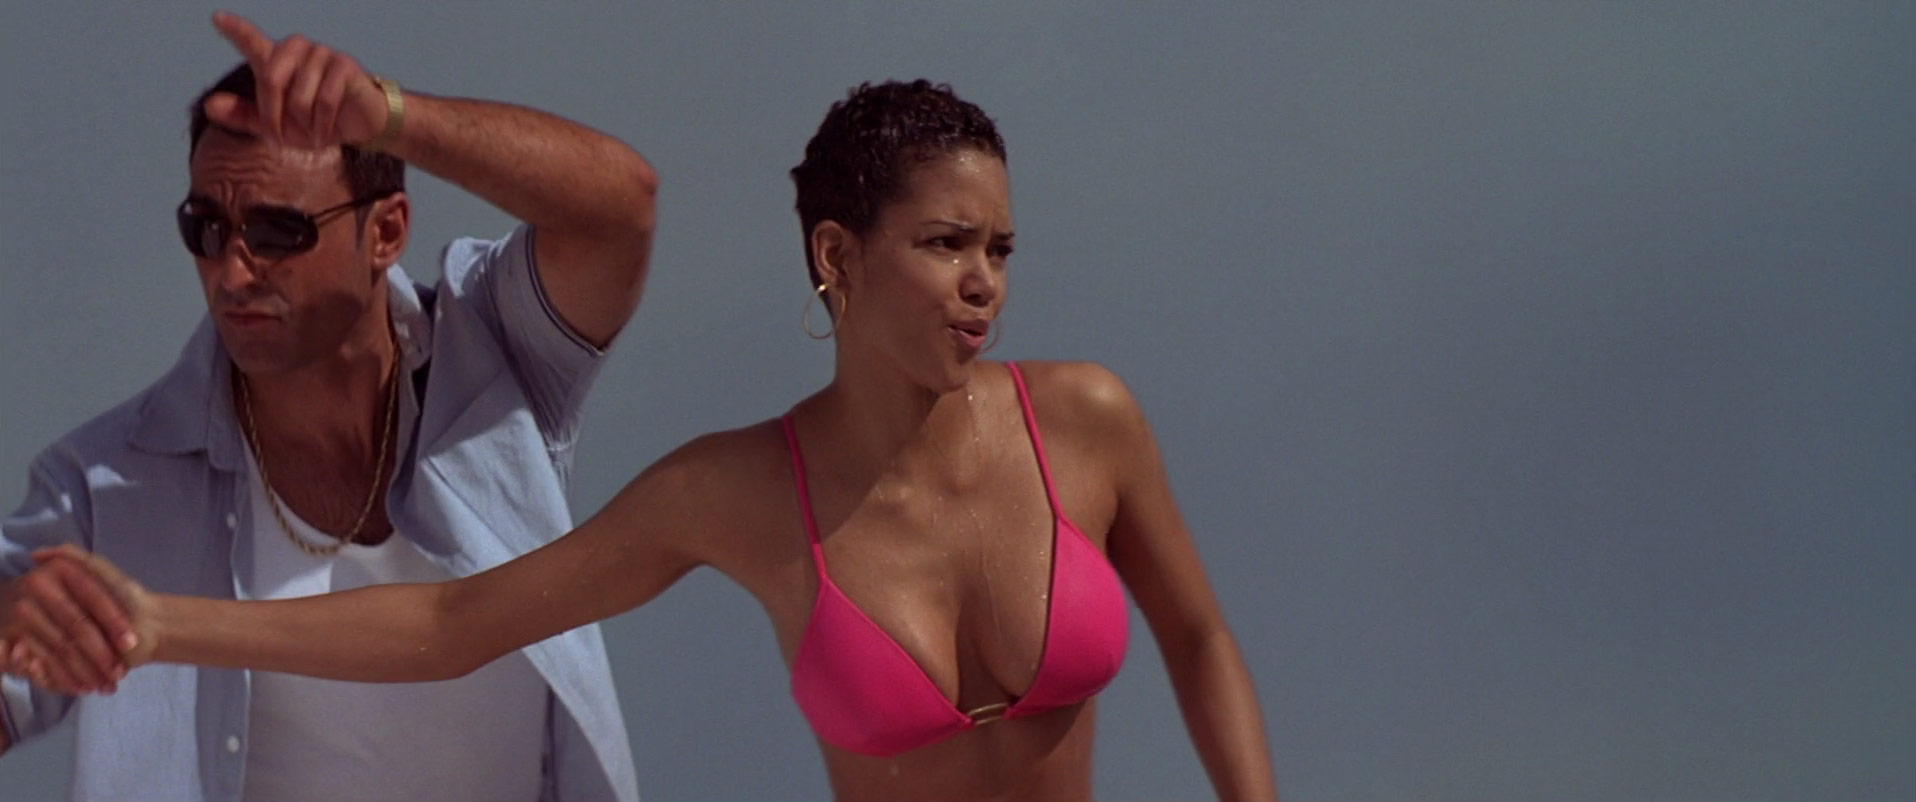 ae24f314fb5ea Die another day die another day james swimsuit jpg 1916x802 Die another day  james swimsuit